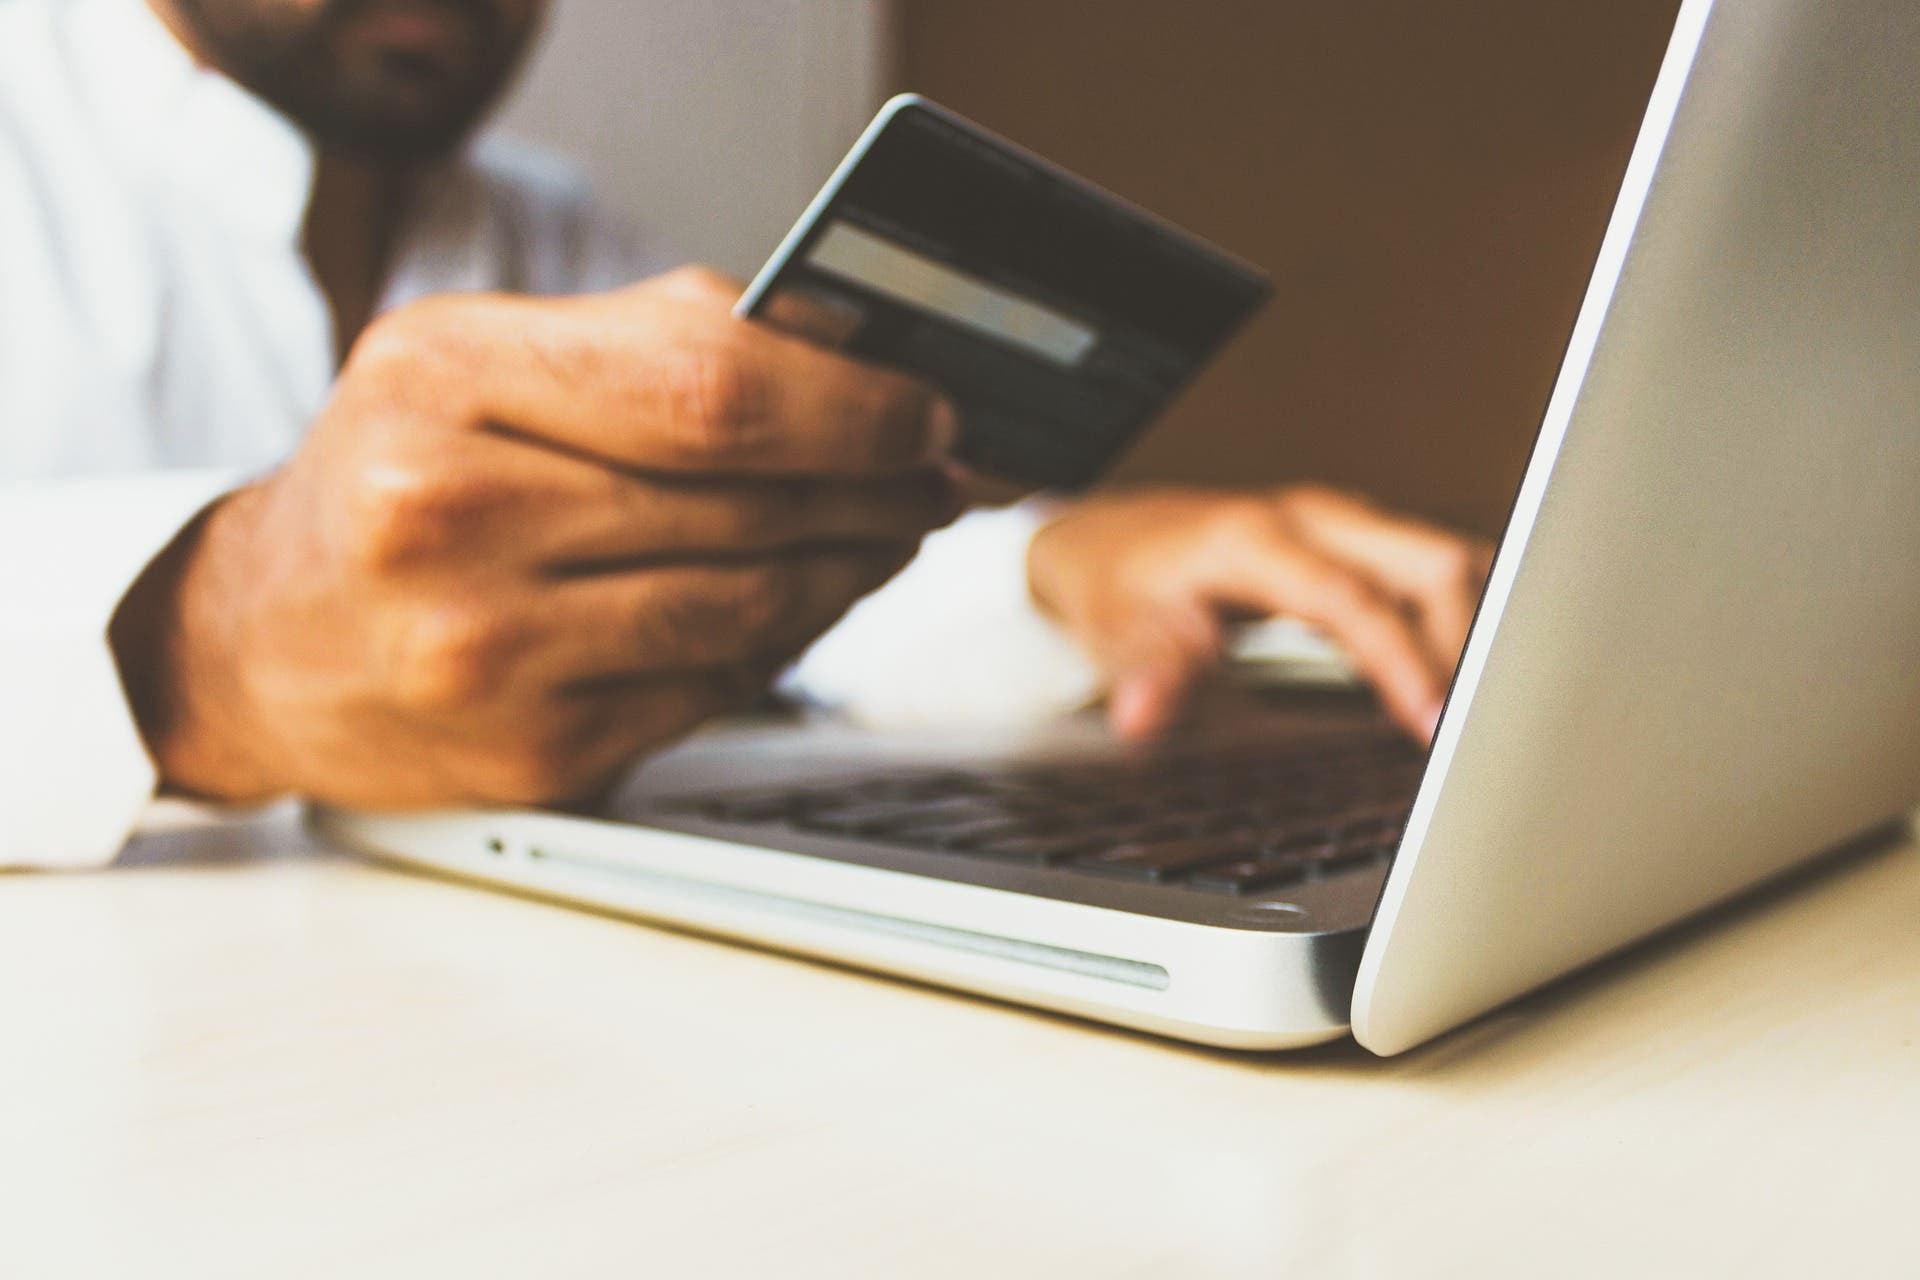 An online purchase with a credit card